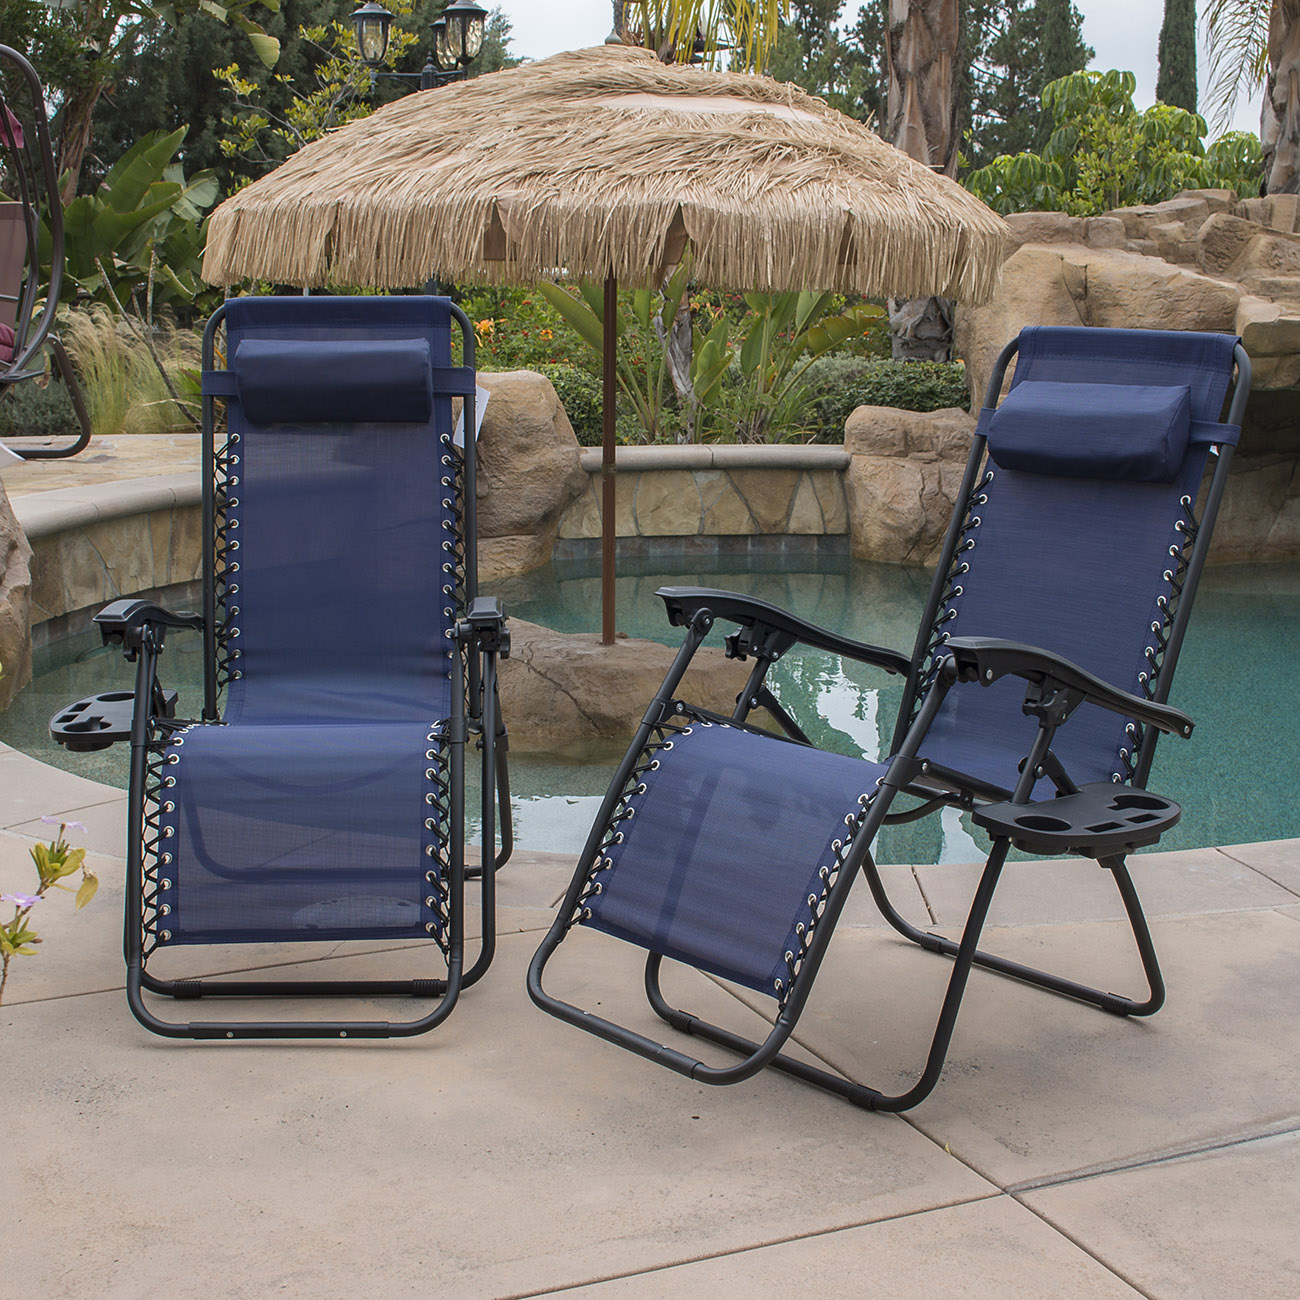 Commercial Pool Lounge Chairs Zero Gravity Chairs Case Of 2 Blue Lounge Patio Chair